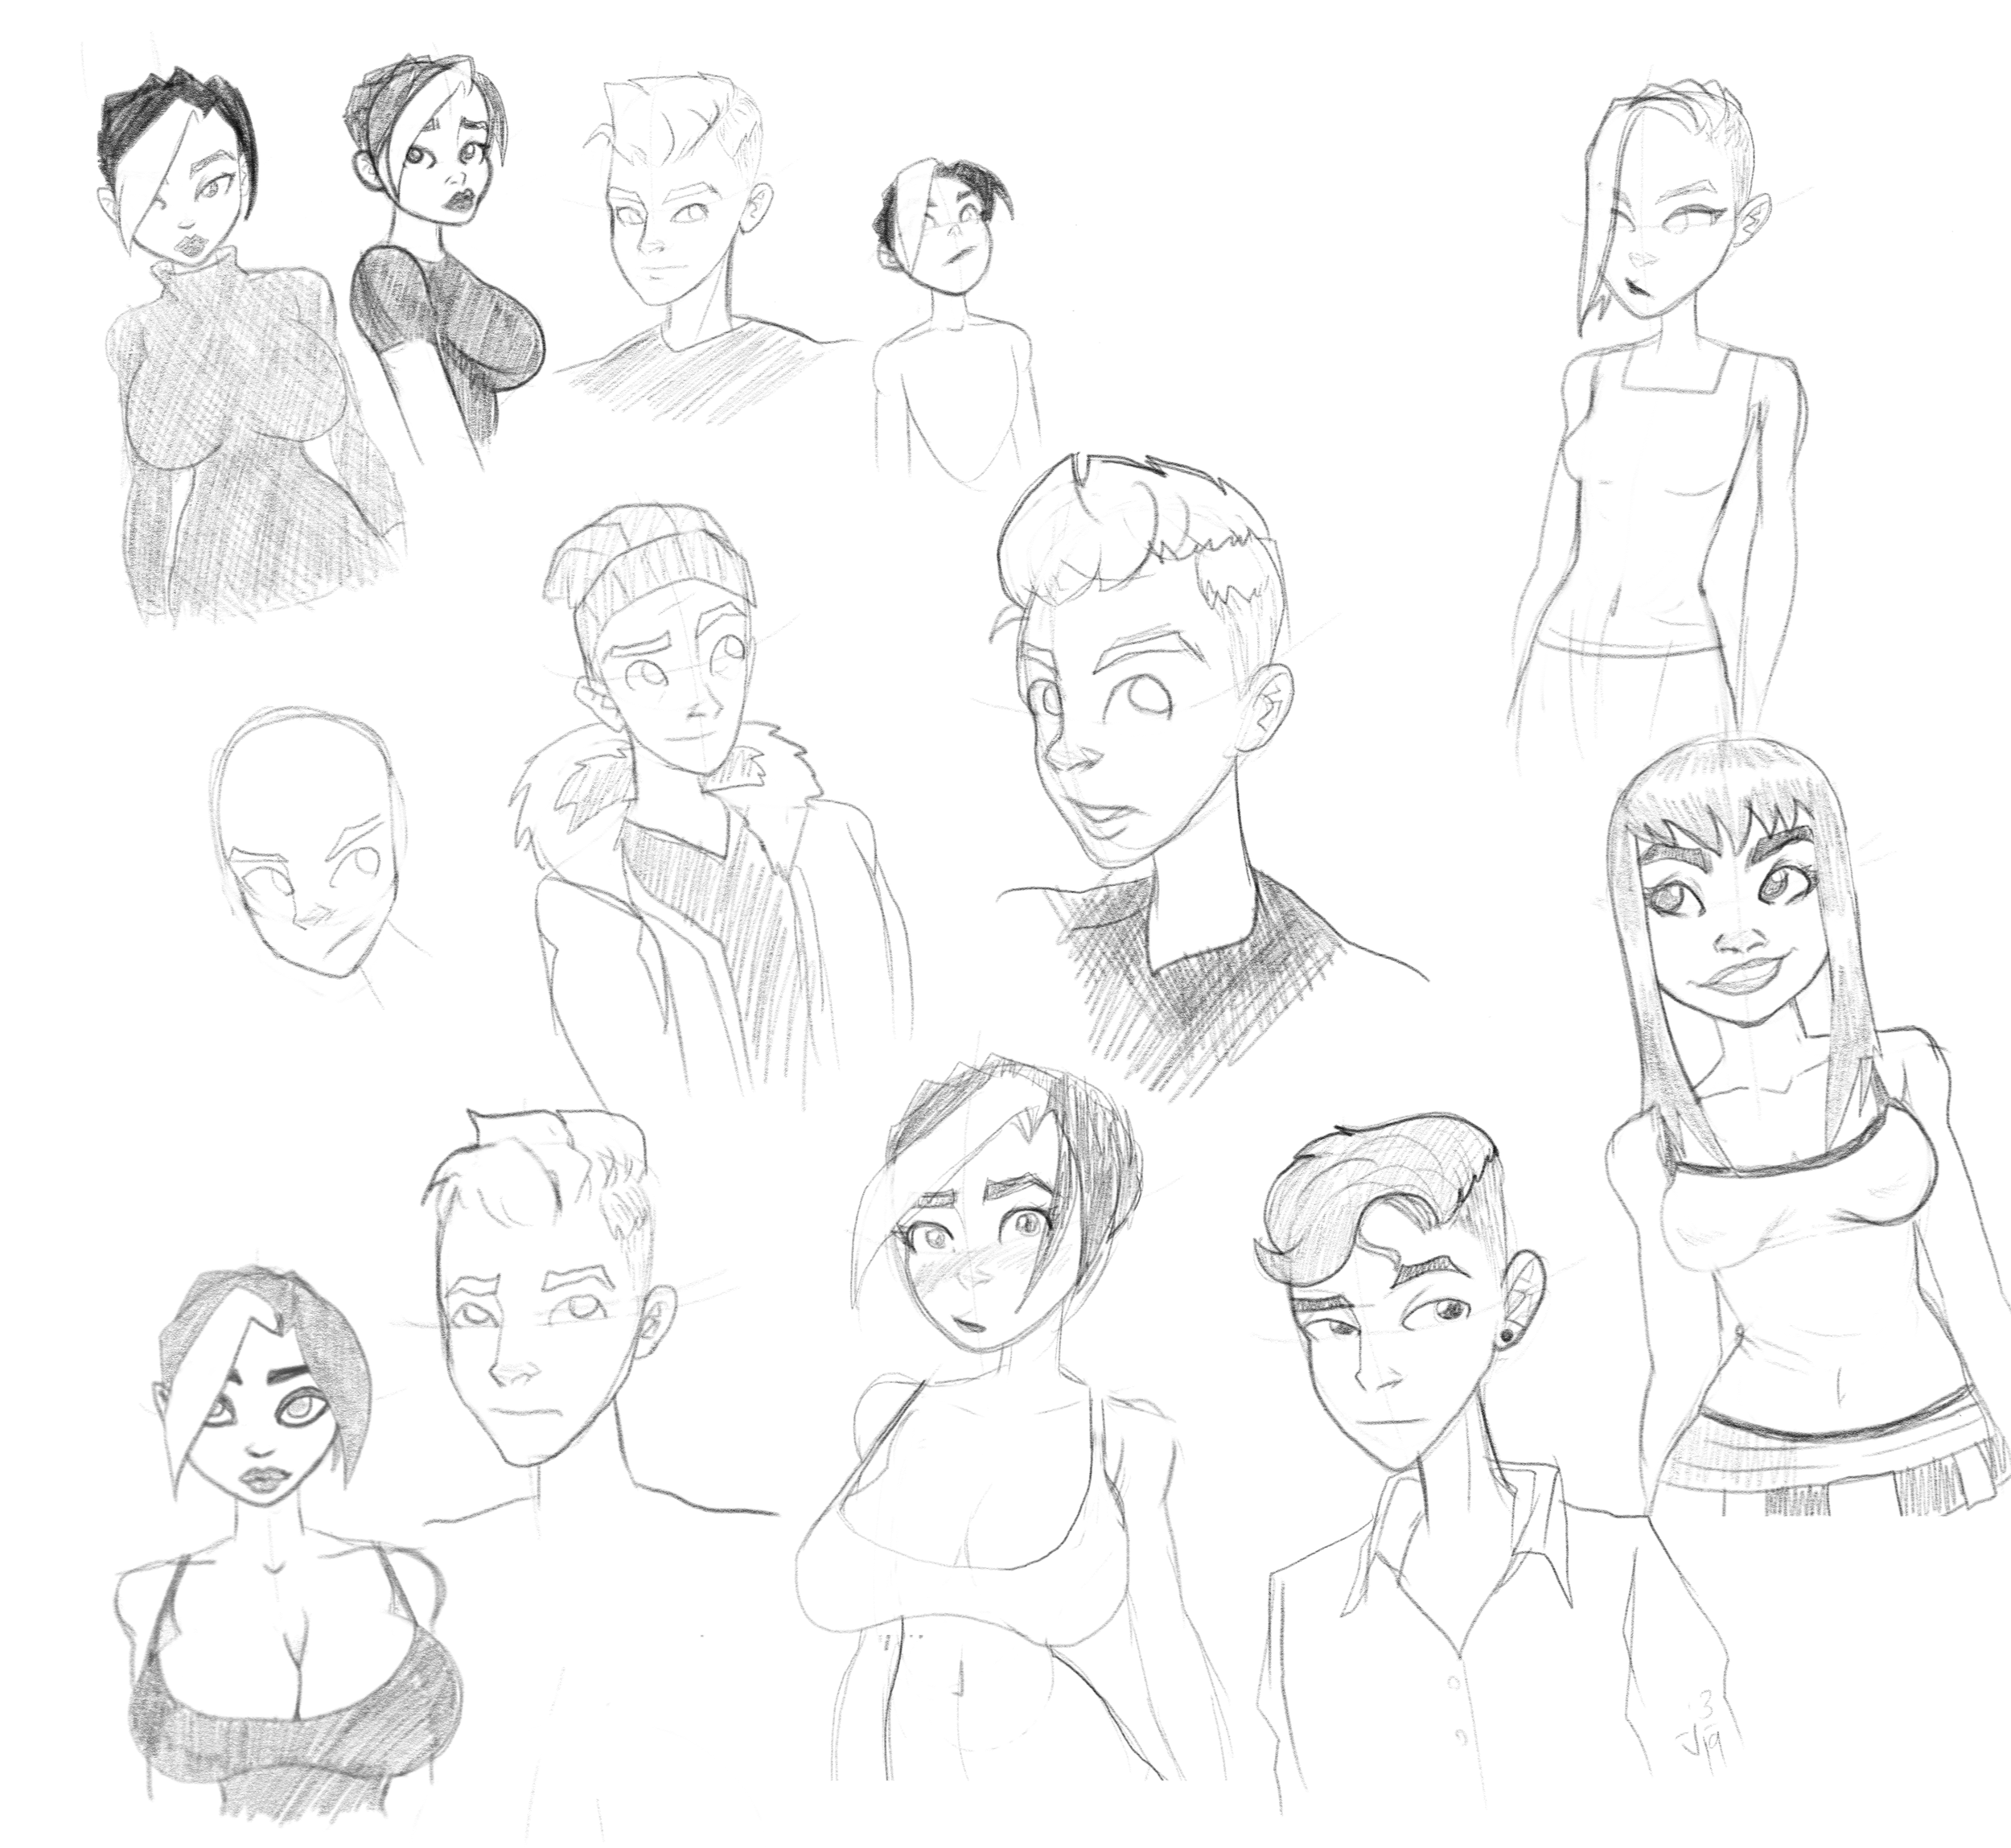 Here, you can kinda see me feeling out my style after a long time away and figuring out how I wanted characters to look.